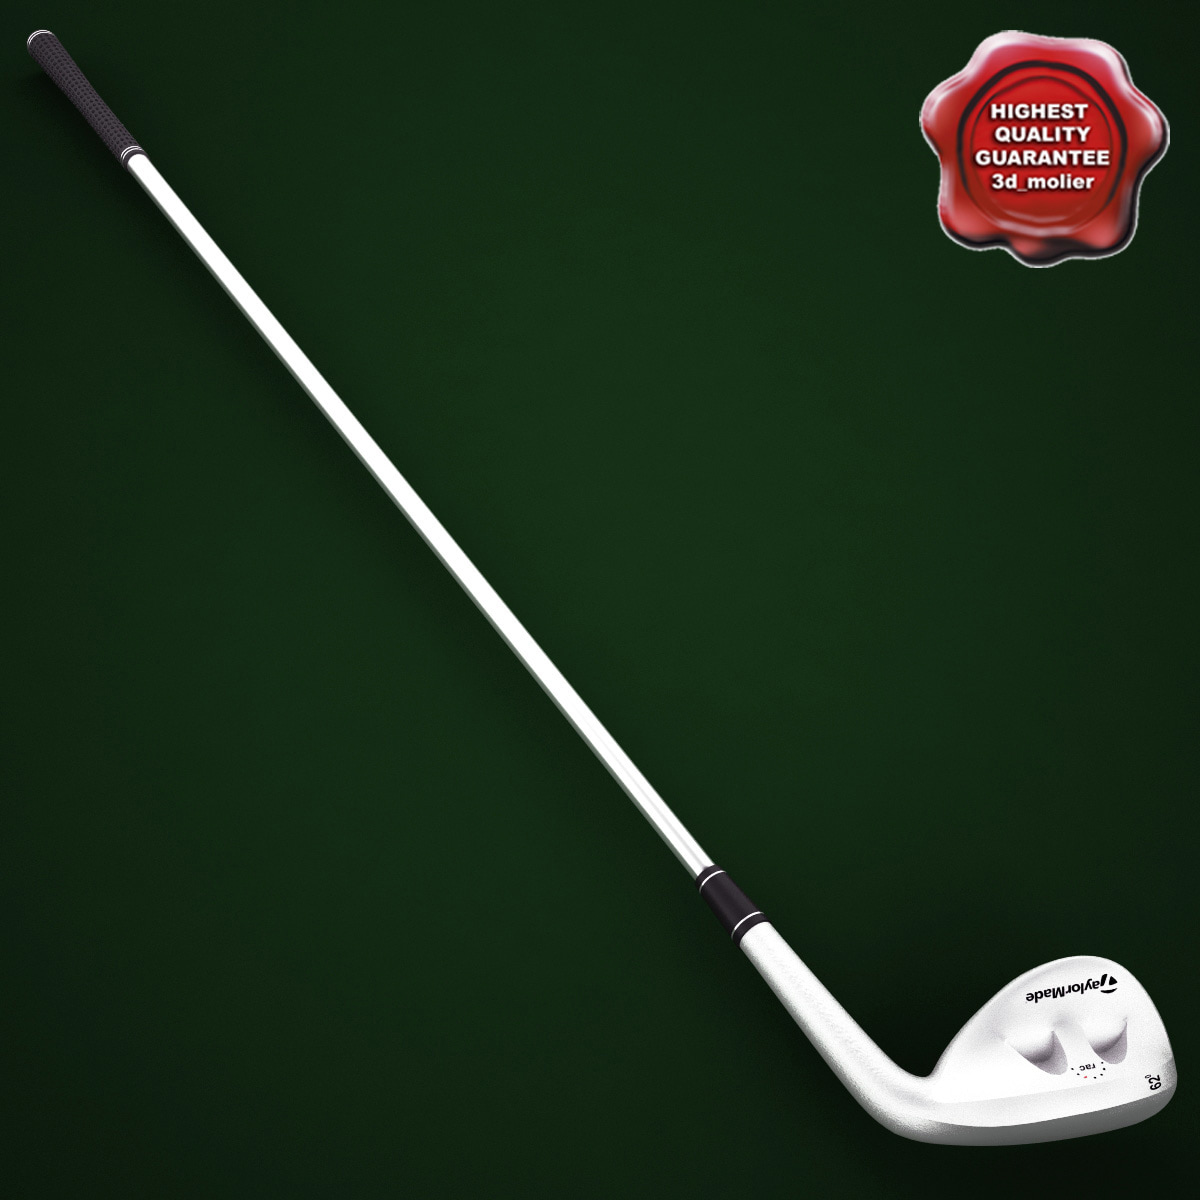 Golf_Stick_TaylorMade_Rac_Chrome_00.jpg